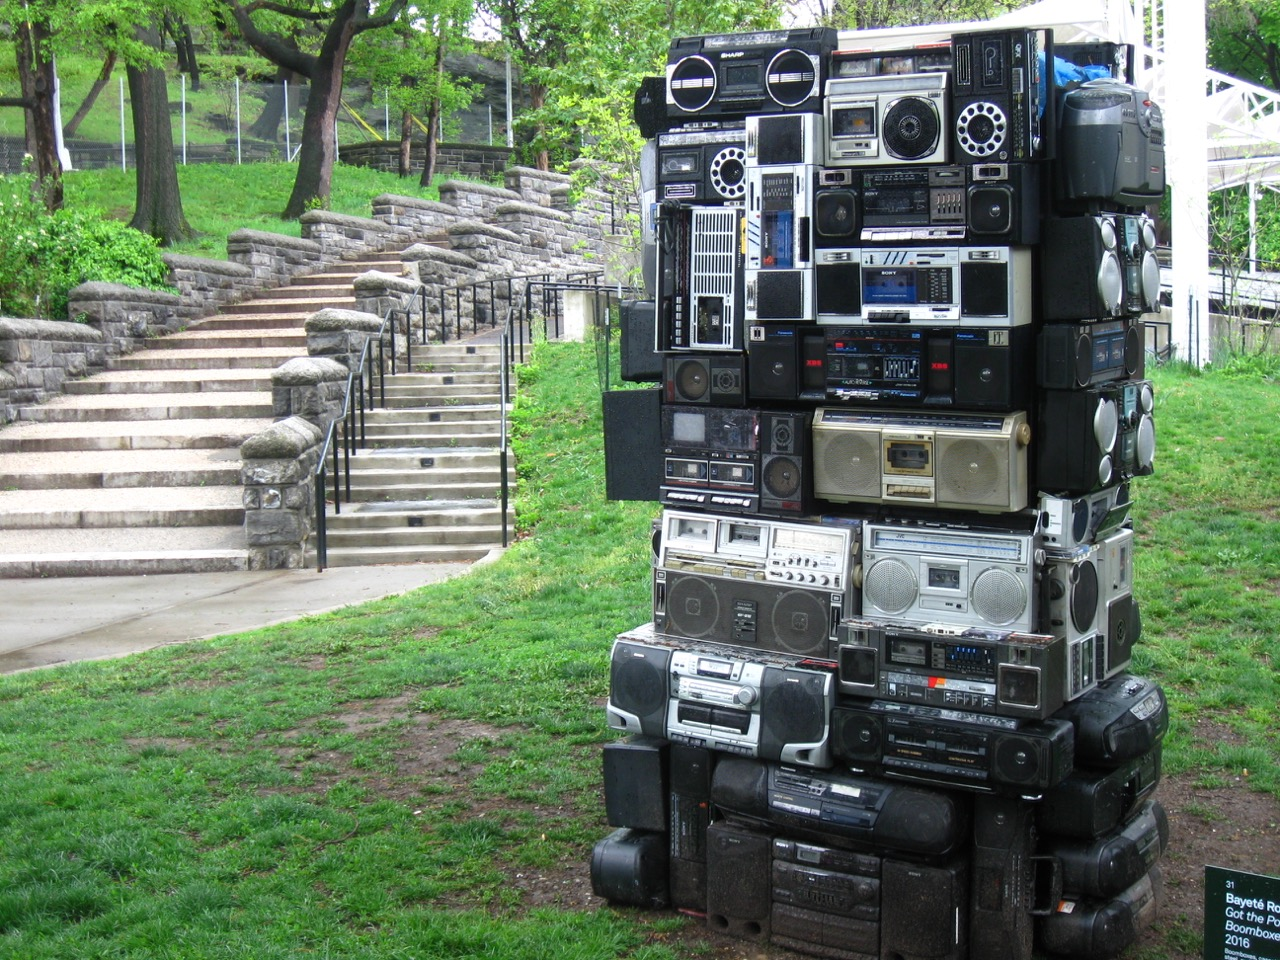 Bayeté Ross Smith Got the Power: Boomboxes: Harlem, 2016. All photos by the author for Hyperallergic